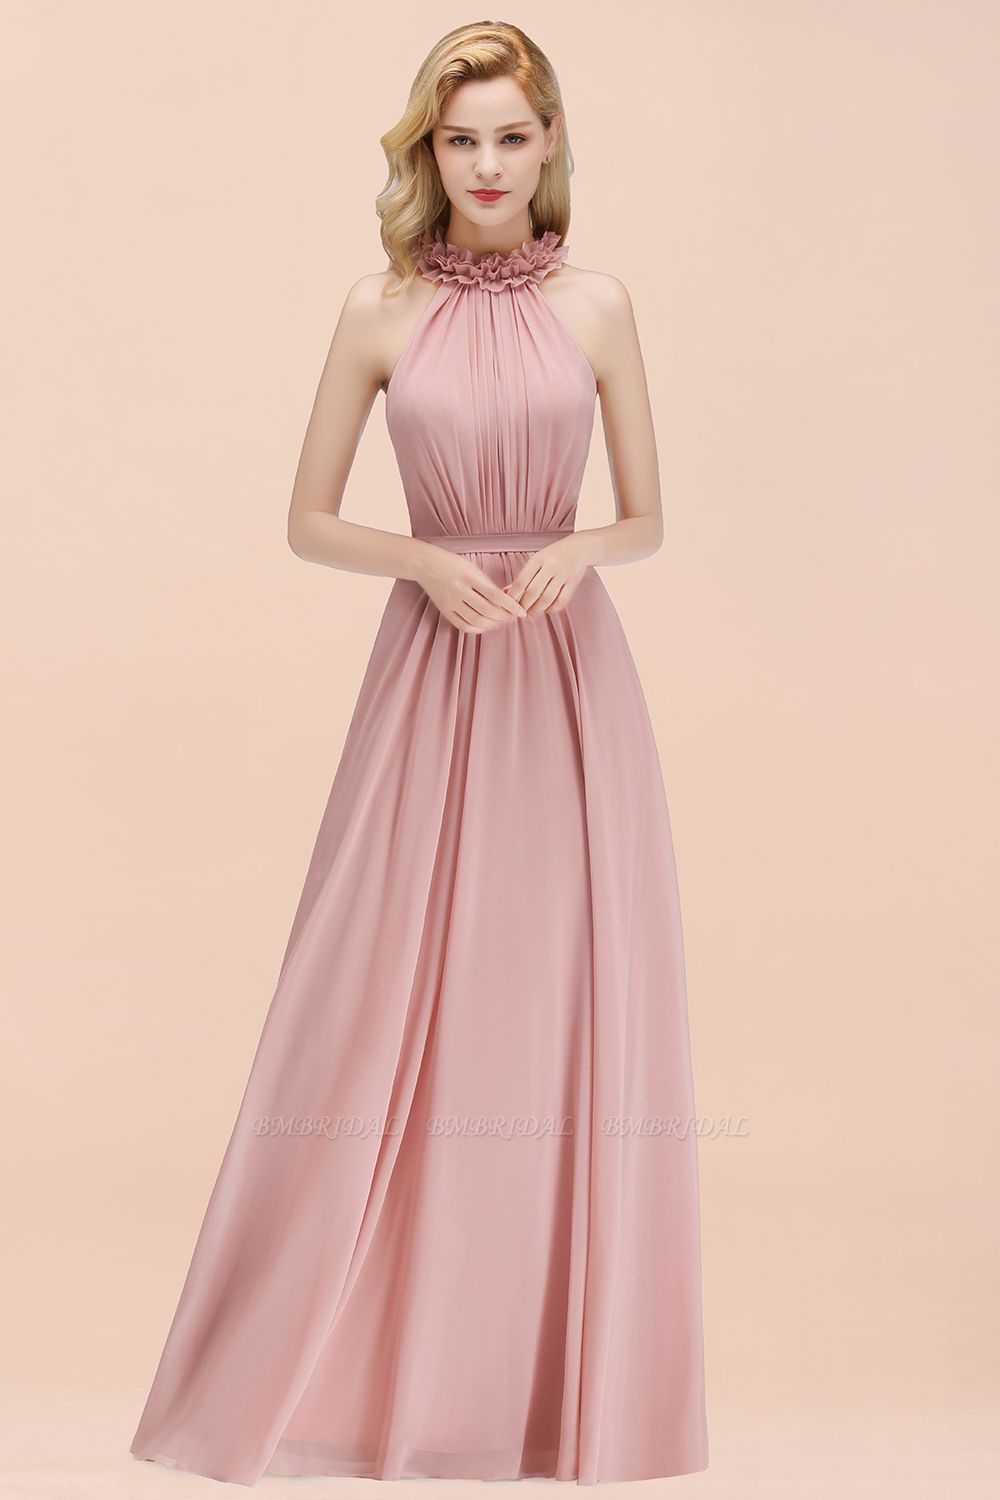 Modest High-Neck Halter Ruffle Chiffon Bridesmaid Dresses Affordable